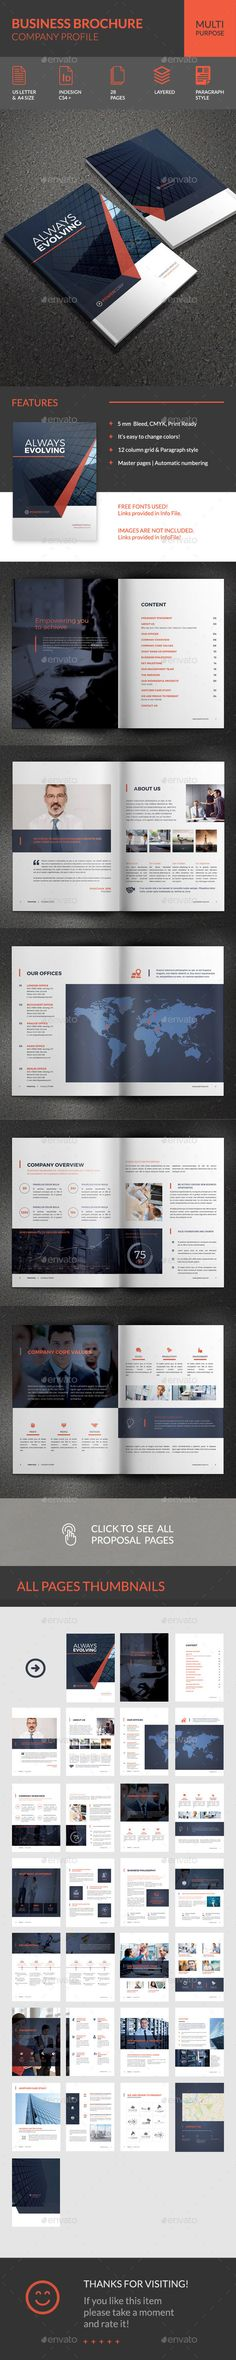 Company Profile Business Brochure Template InDesign INDD. Download here: http://graphicriver.net/item/business-brochure-company-profile/14627559?ref=ksioks